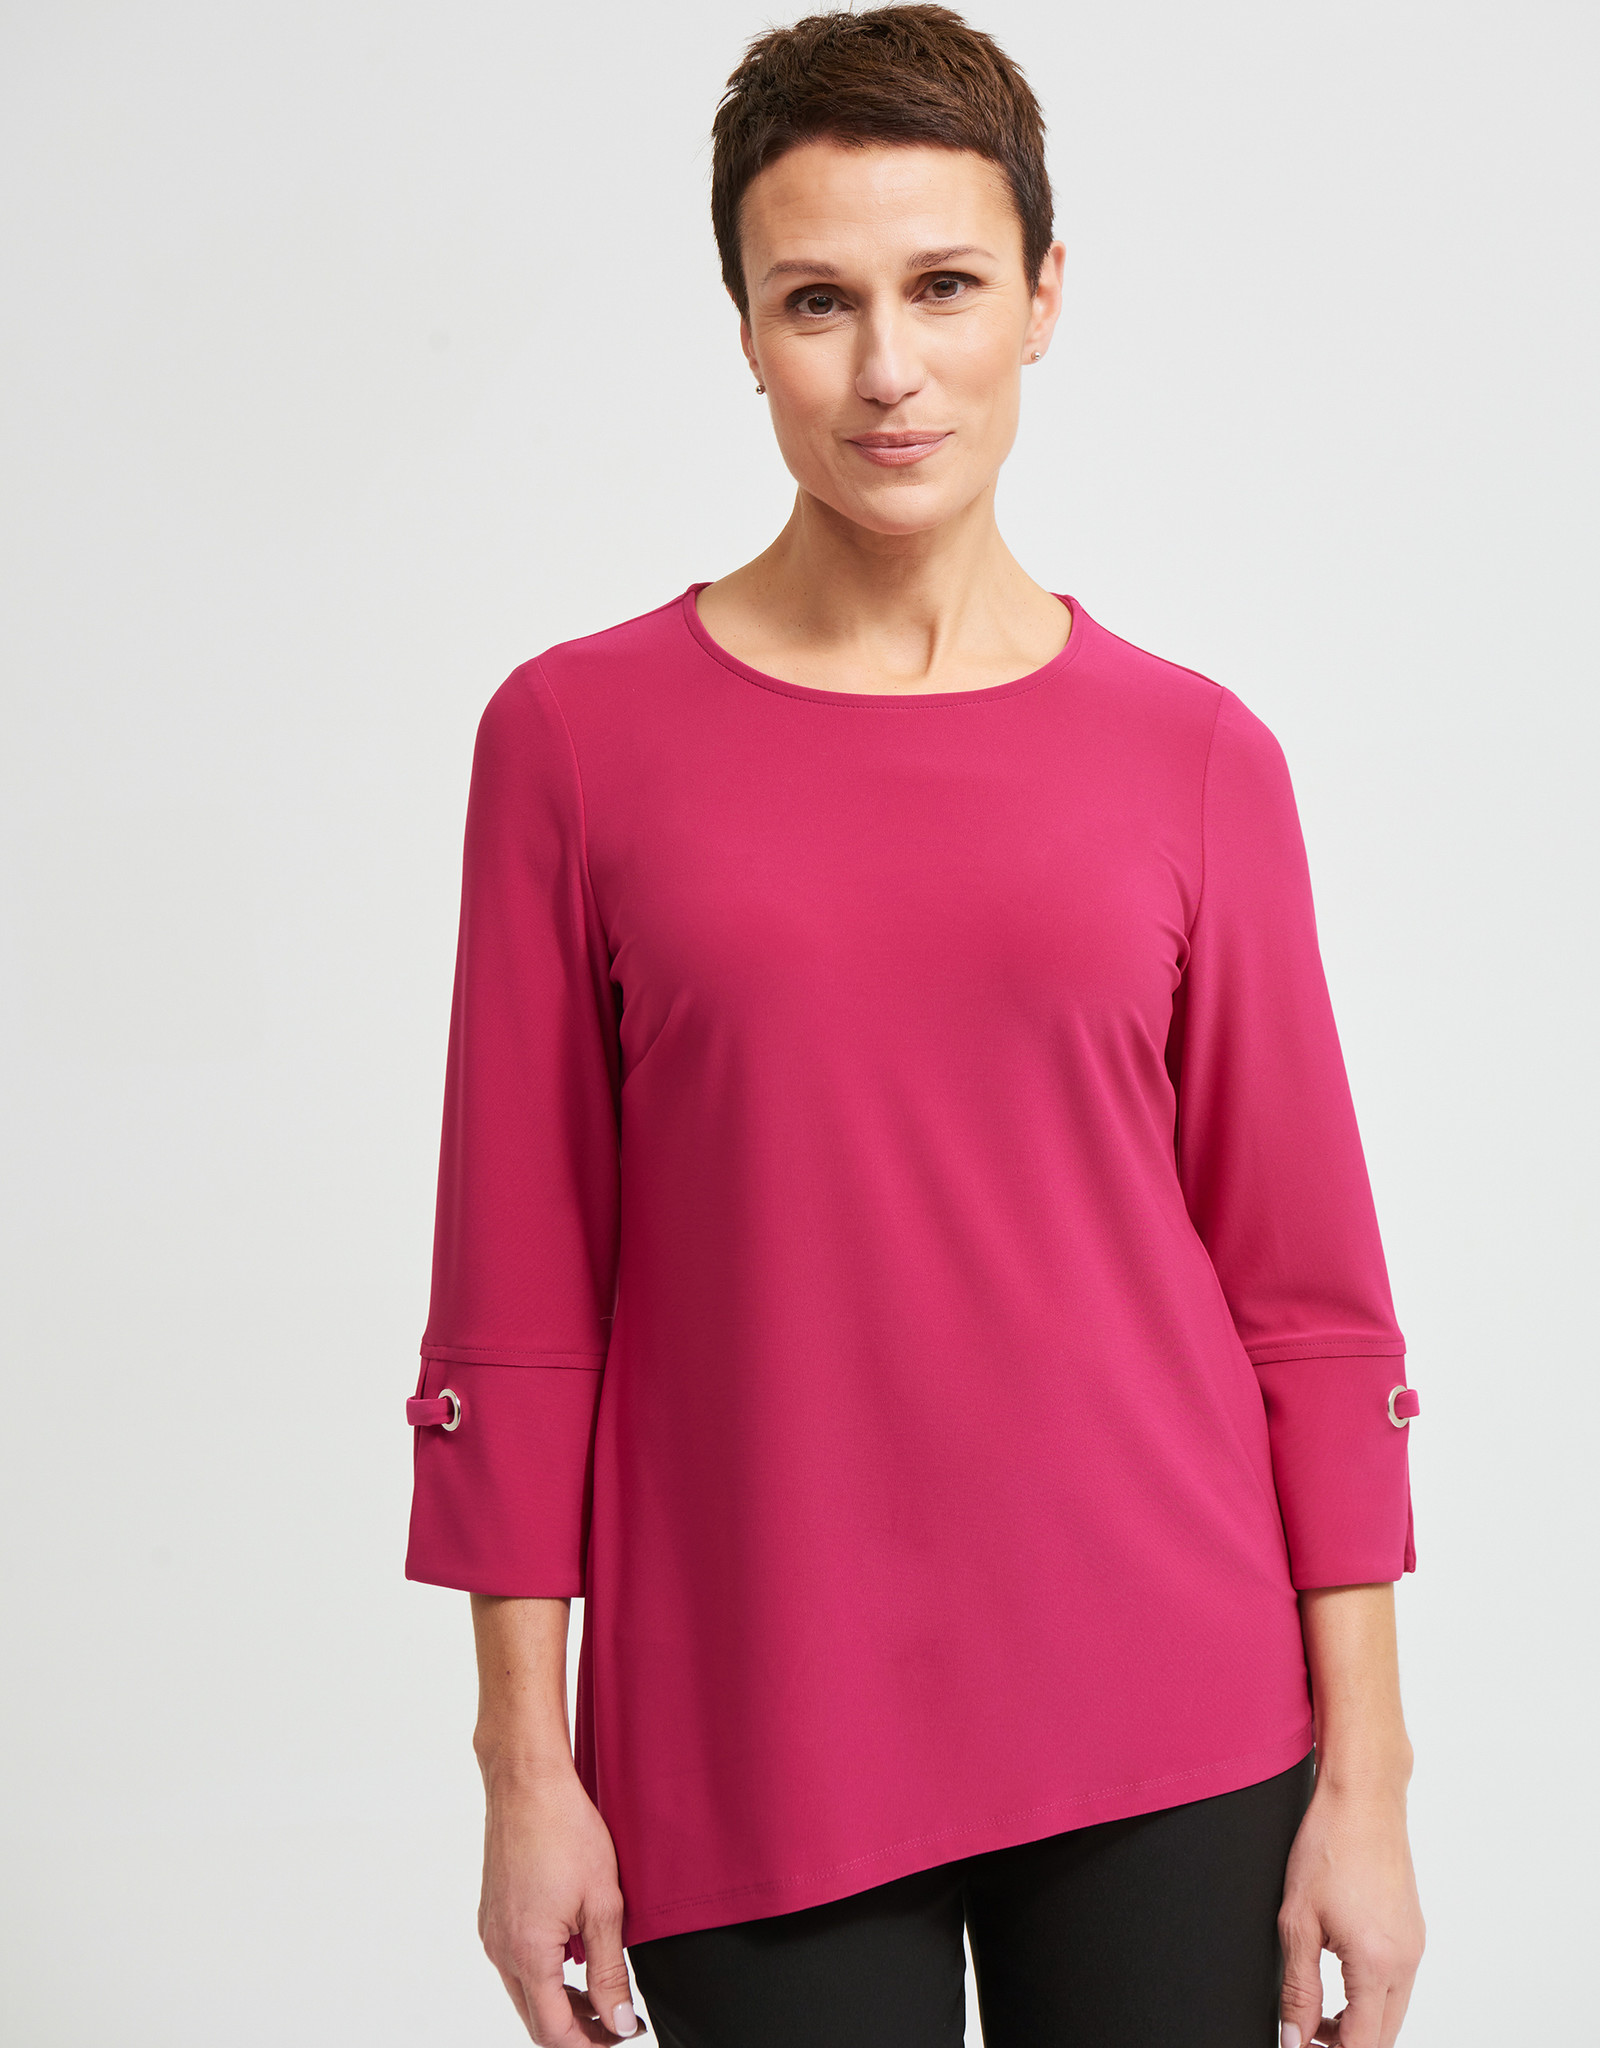 Joseph Ribkoff Joseph Ribkoff 213373 Ladies 3/4 Sleeve Top with a Round neckline and Grommet detail on sleeve